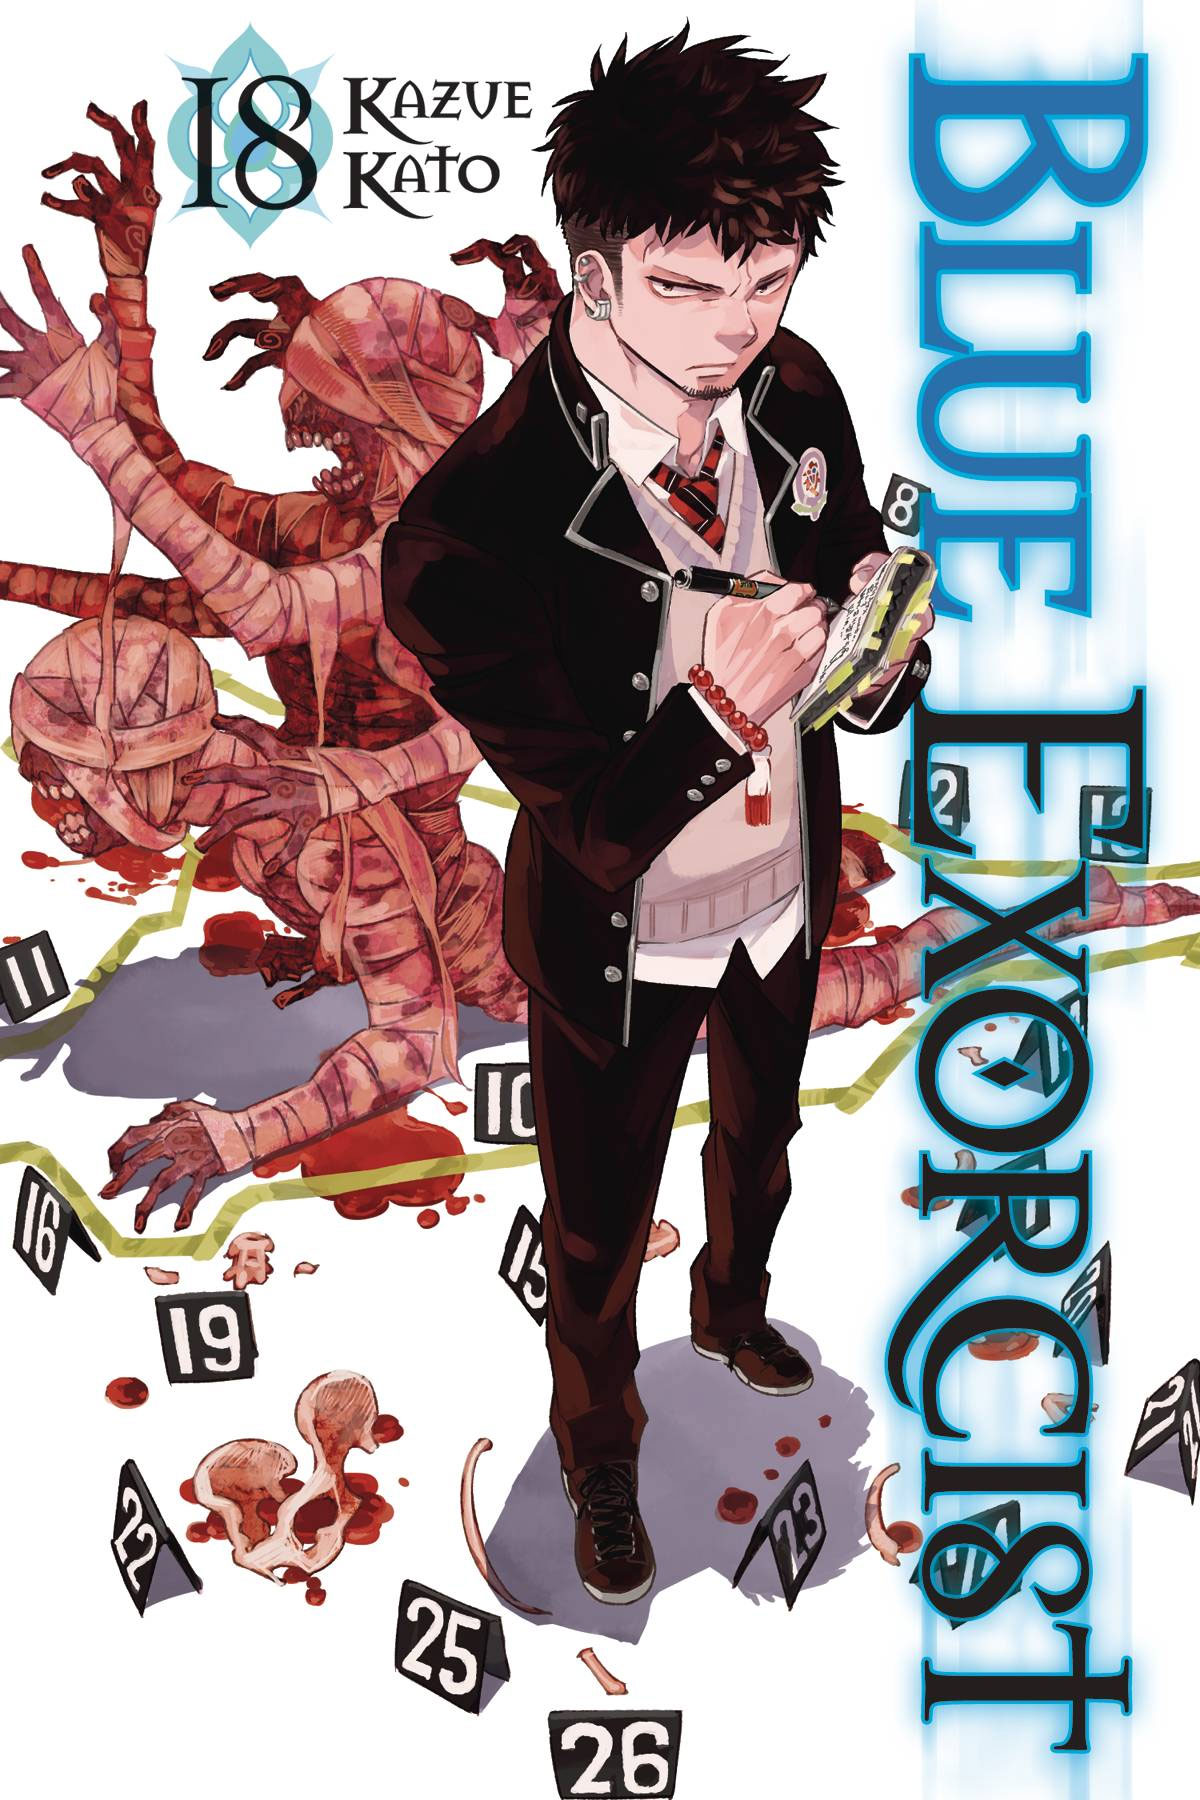 Blue Exorcist Chapter 132 Release Date, Plot And Where To Watch Online